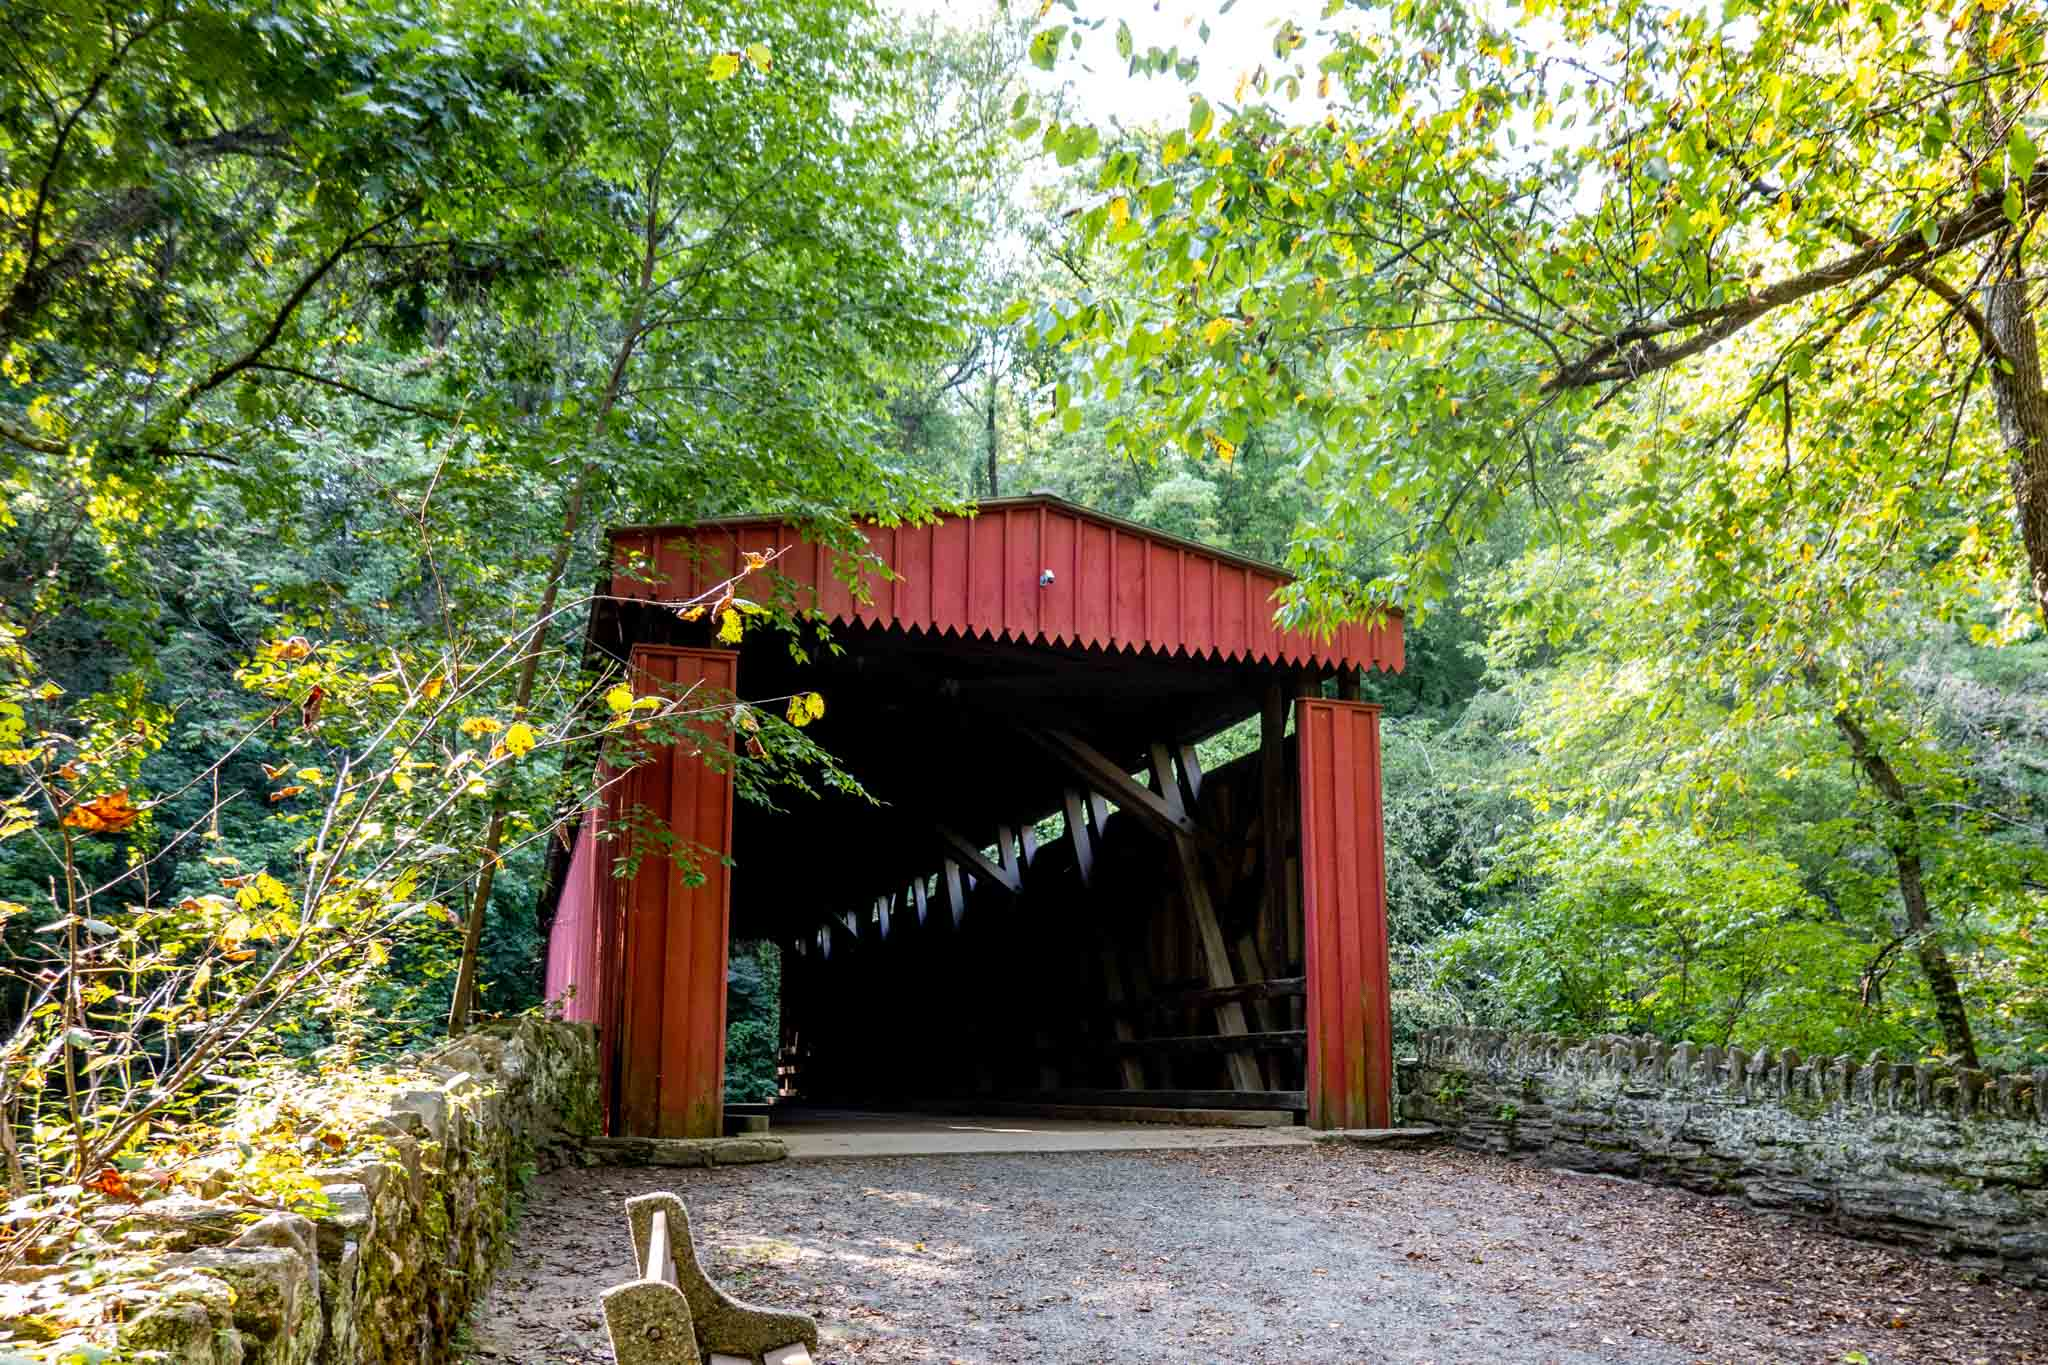 Red covered bridge surrounded by trees